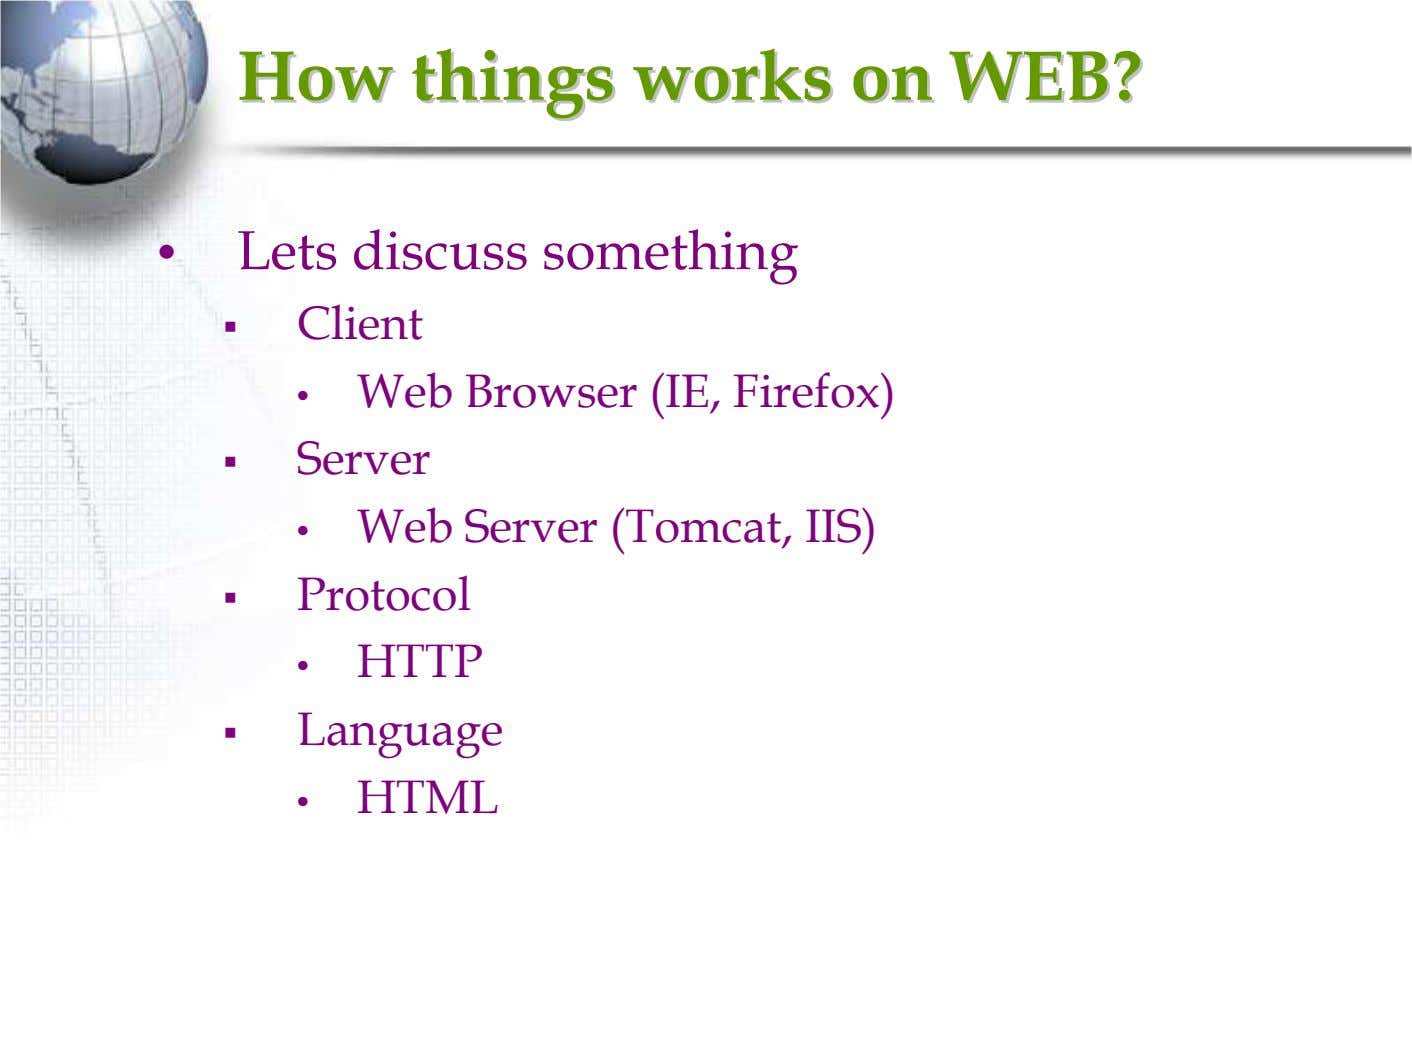 HowHow thingsthings worksworks onon WEB?WEB? • Lets discuss something Client • Web Browser (IE, Firefox)